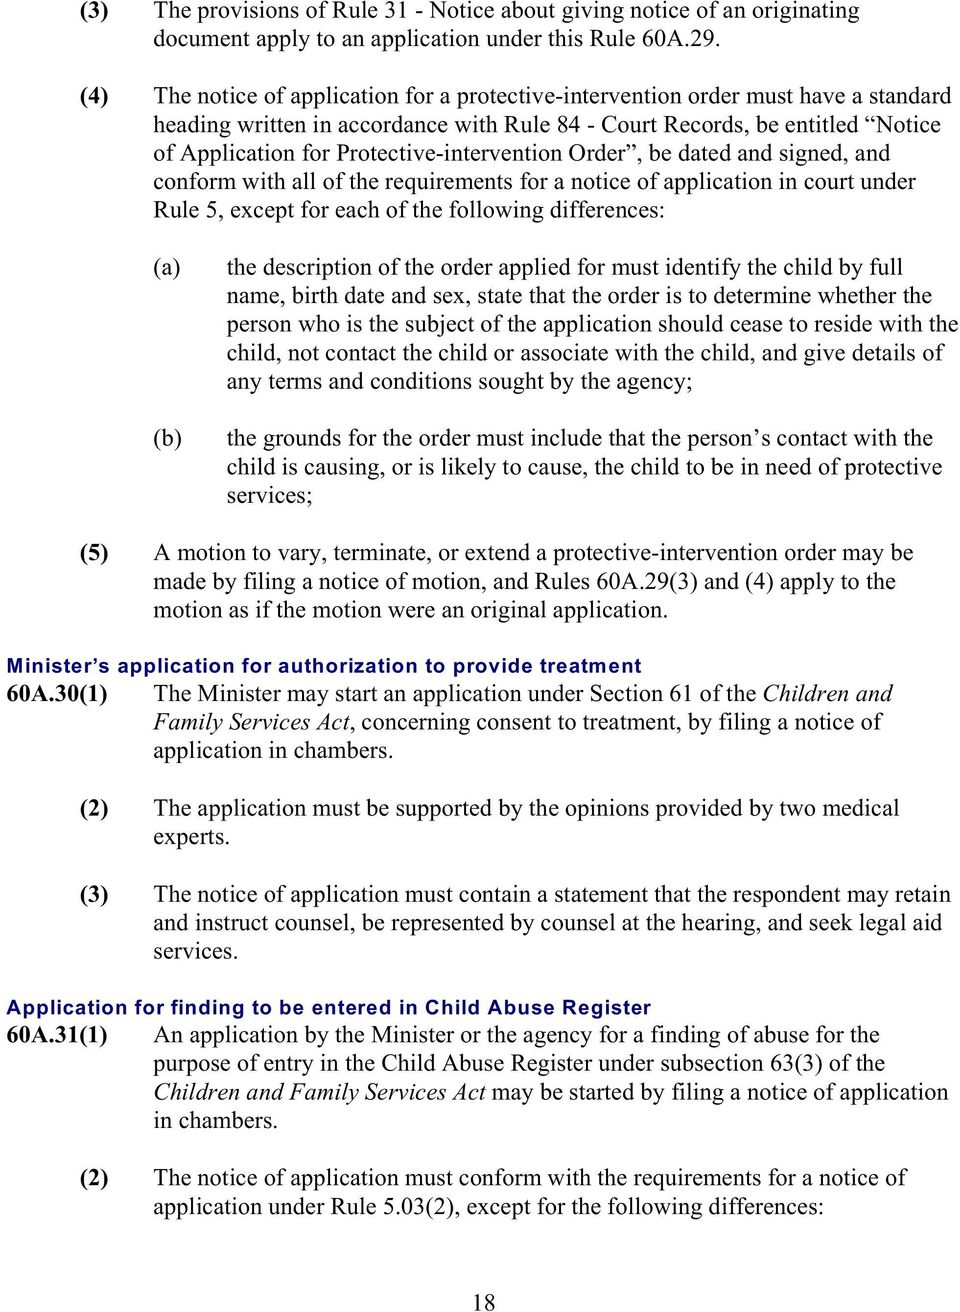 Protective-intervention Order, be dated and signed, and conform with all of the requirements for a notice of application in court under Rule 5, except for each of the following differences: the